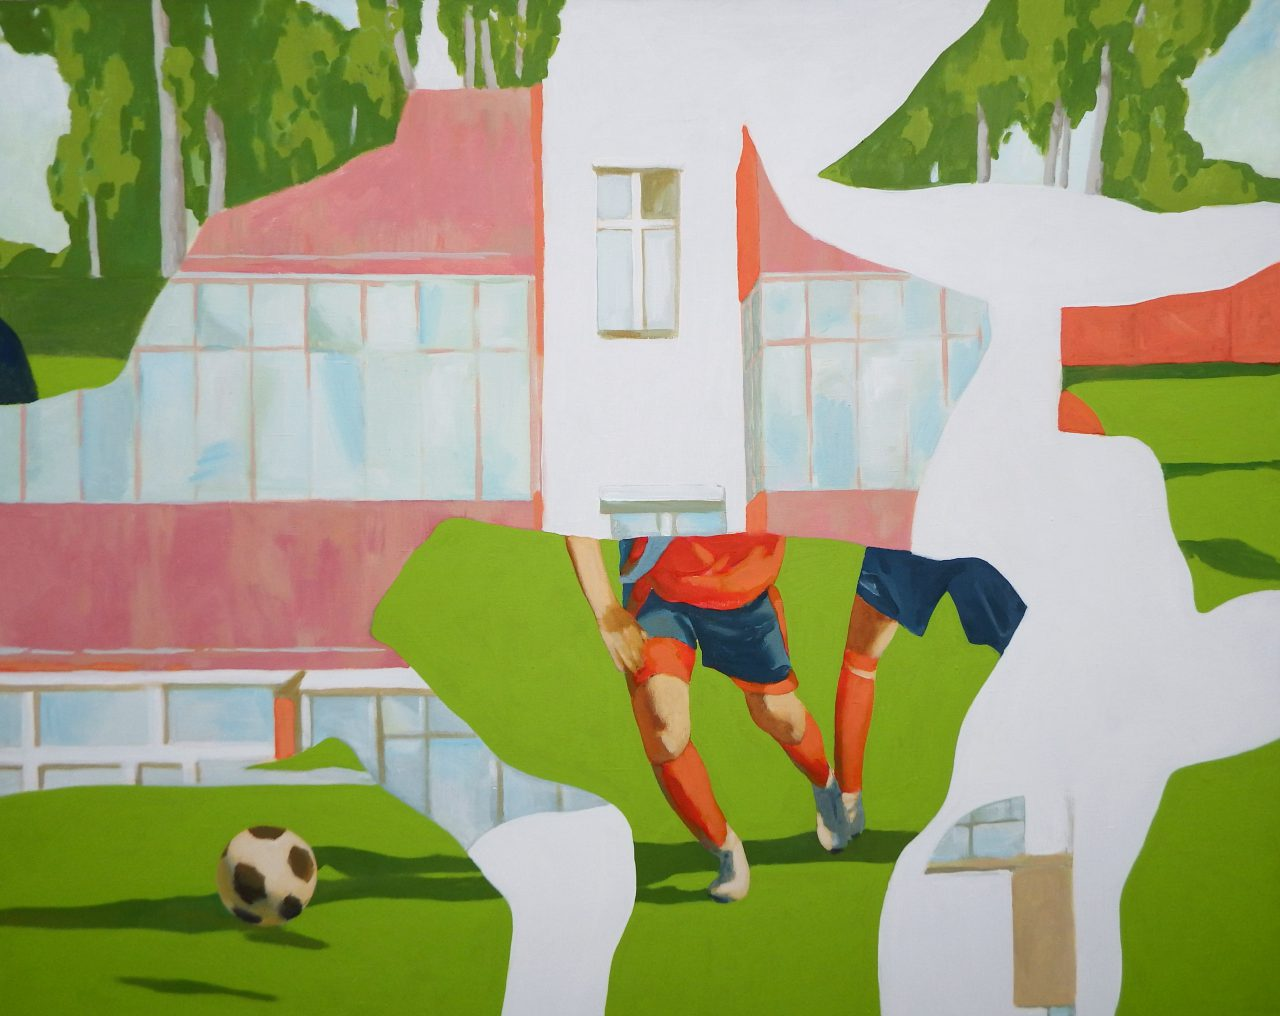 City of childhood / a series of painting / 120x150cm, acrilic on canvas